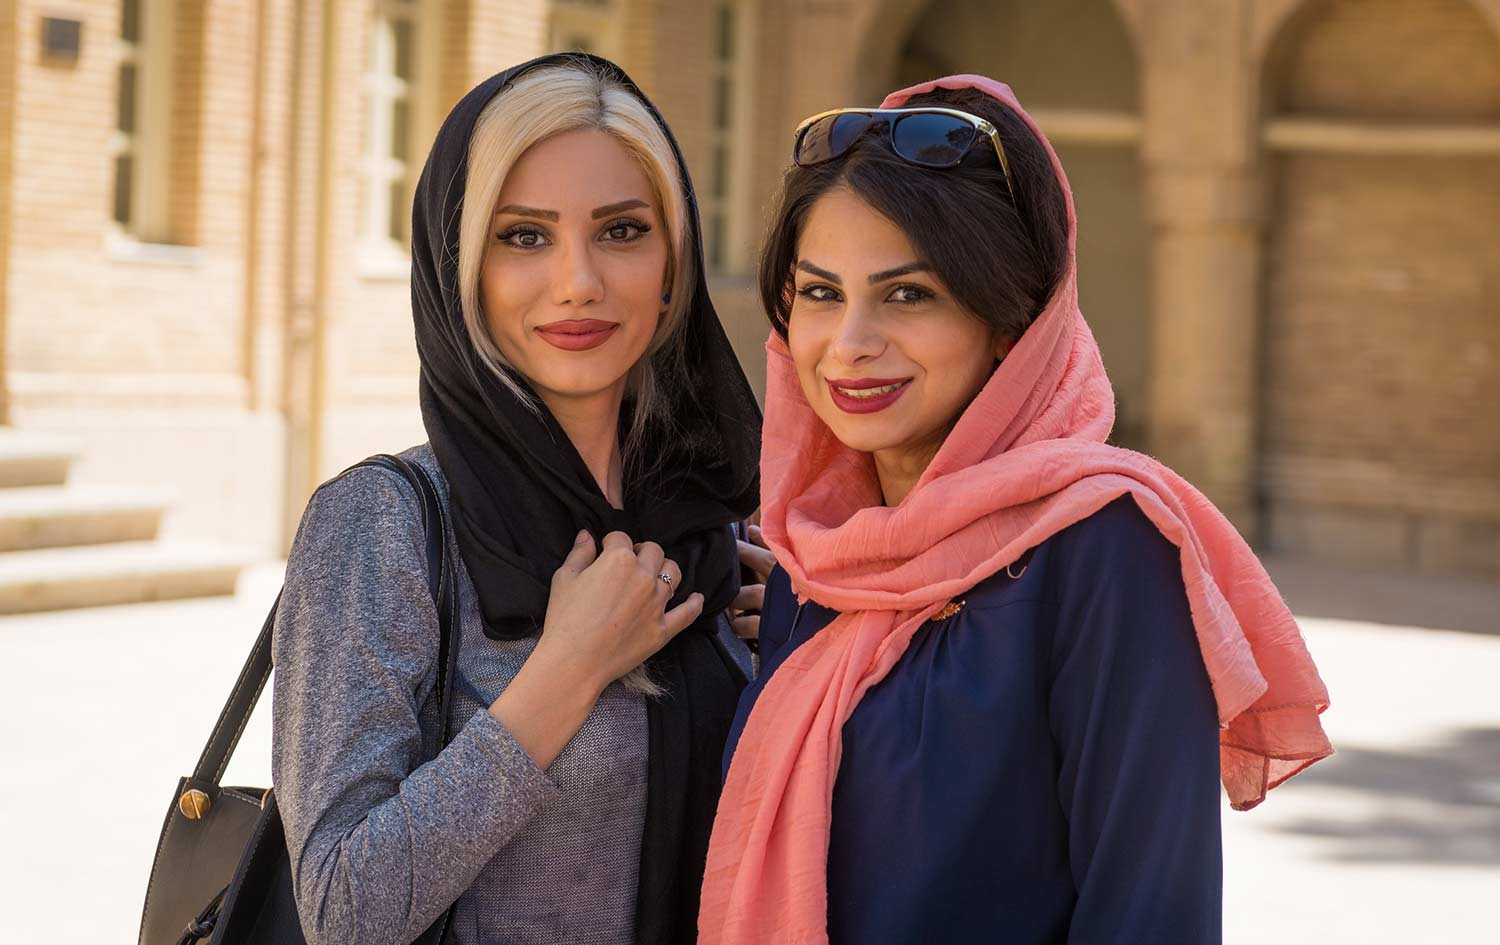 Dress Code in Iran - What to Wear When Visiting Iran